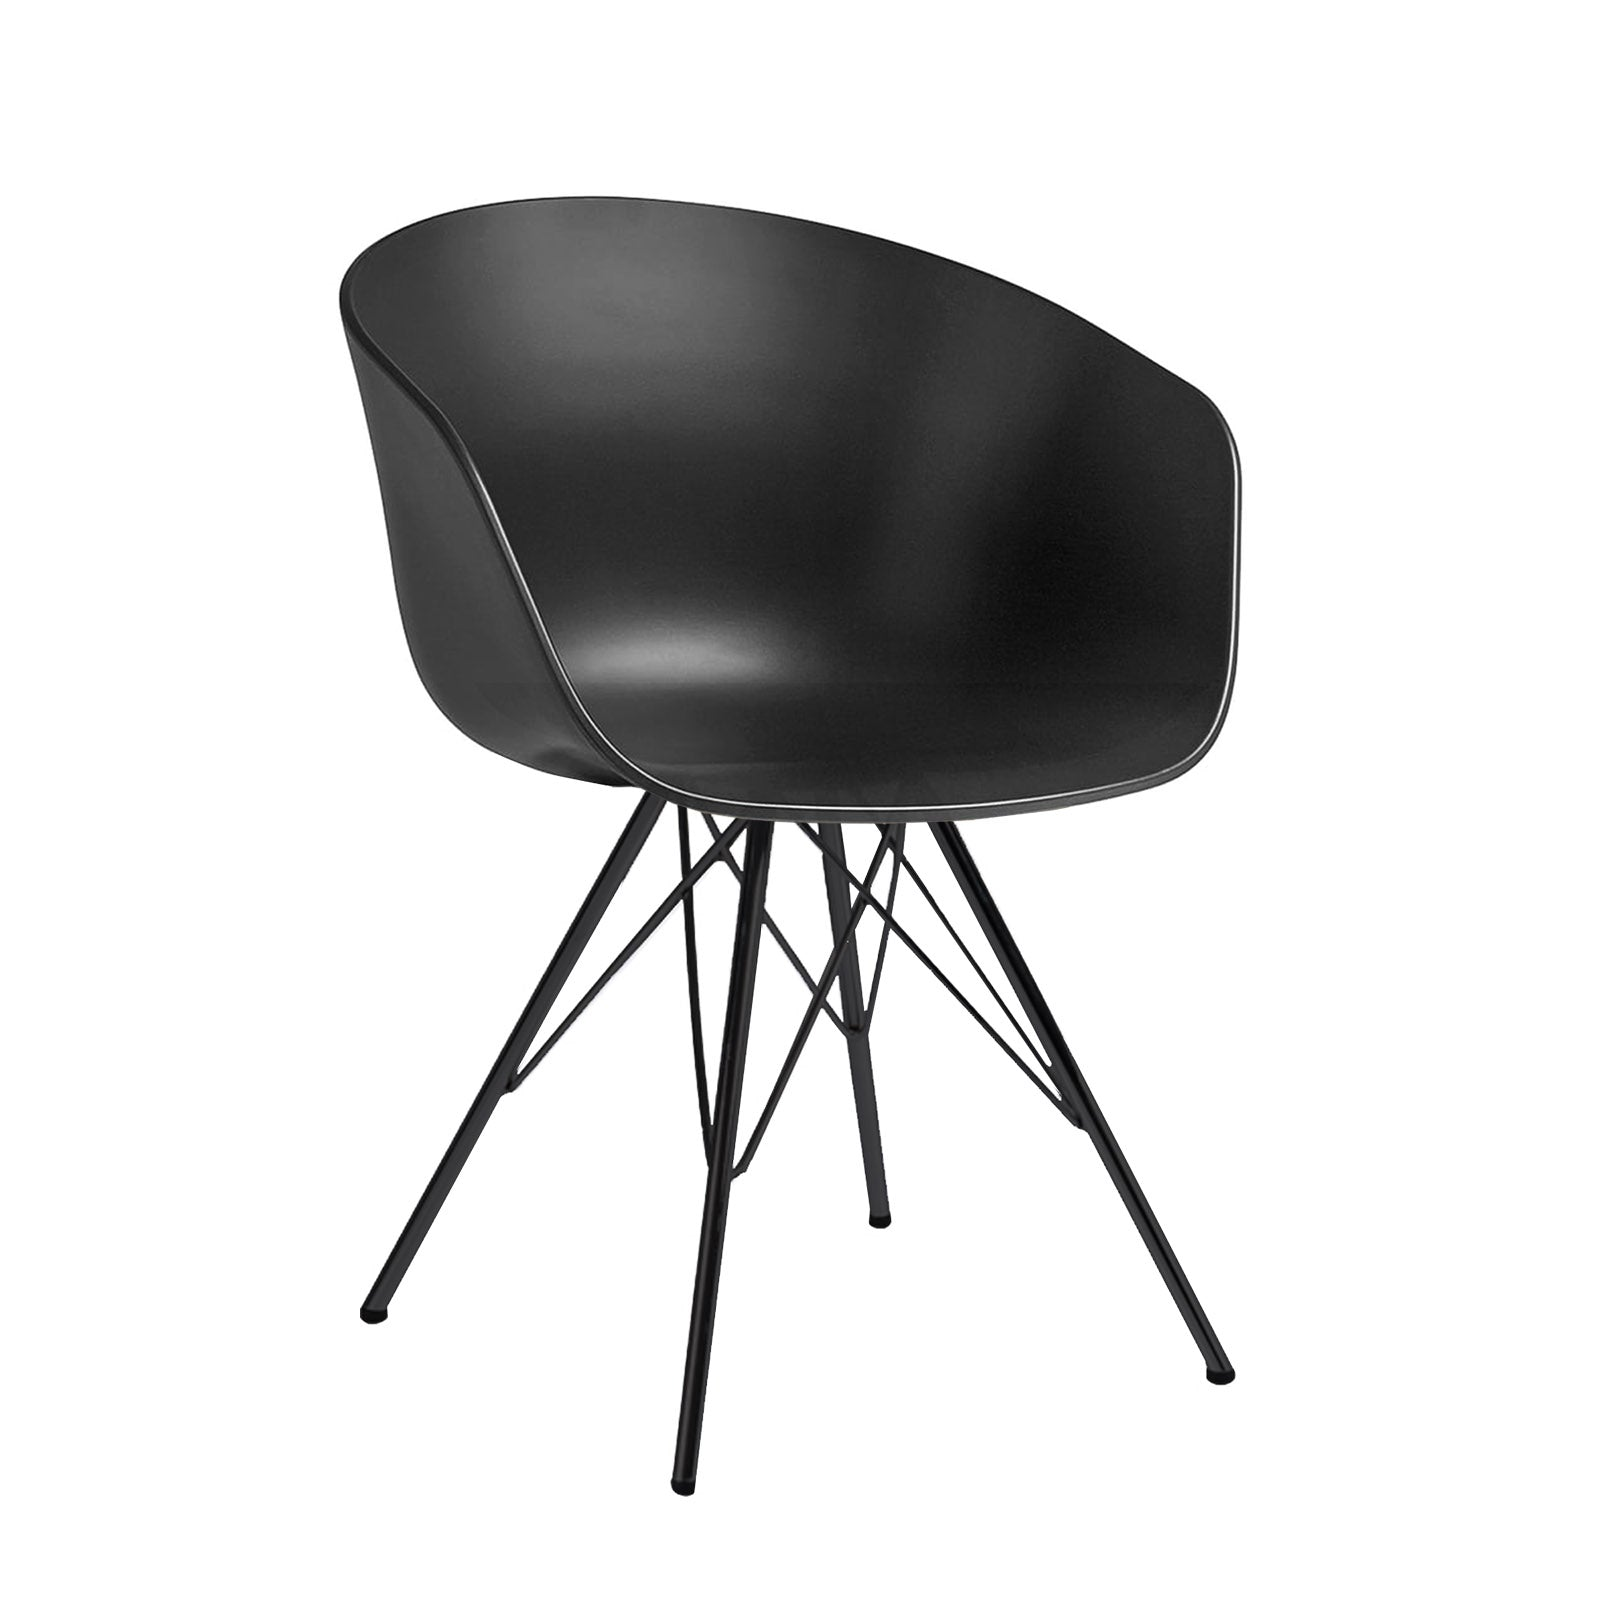 Dinning Chair- Plastic- MS0038-M+CMON-035LEG -  كرسى سفرة بلاستيك - Shop Online Furniture and Home Decor Store in Dubai, UAE at ebarza